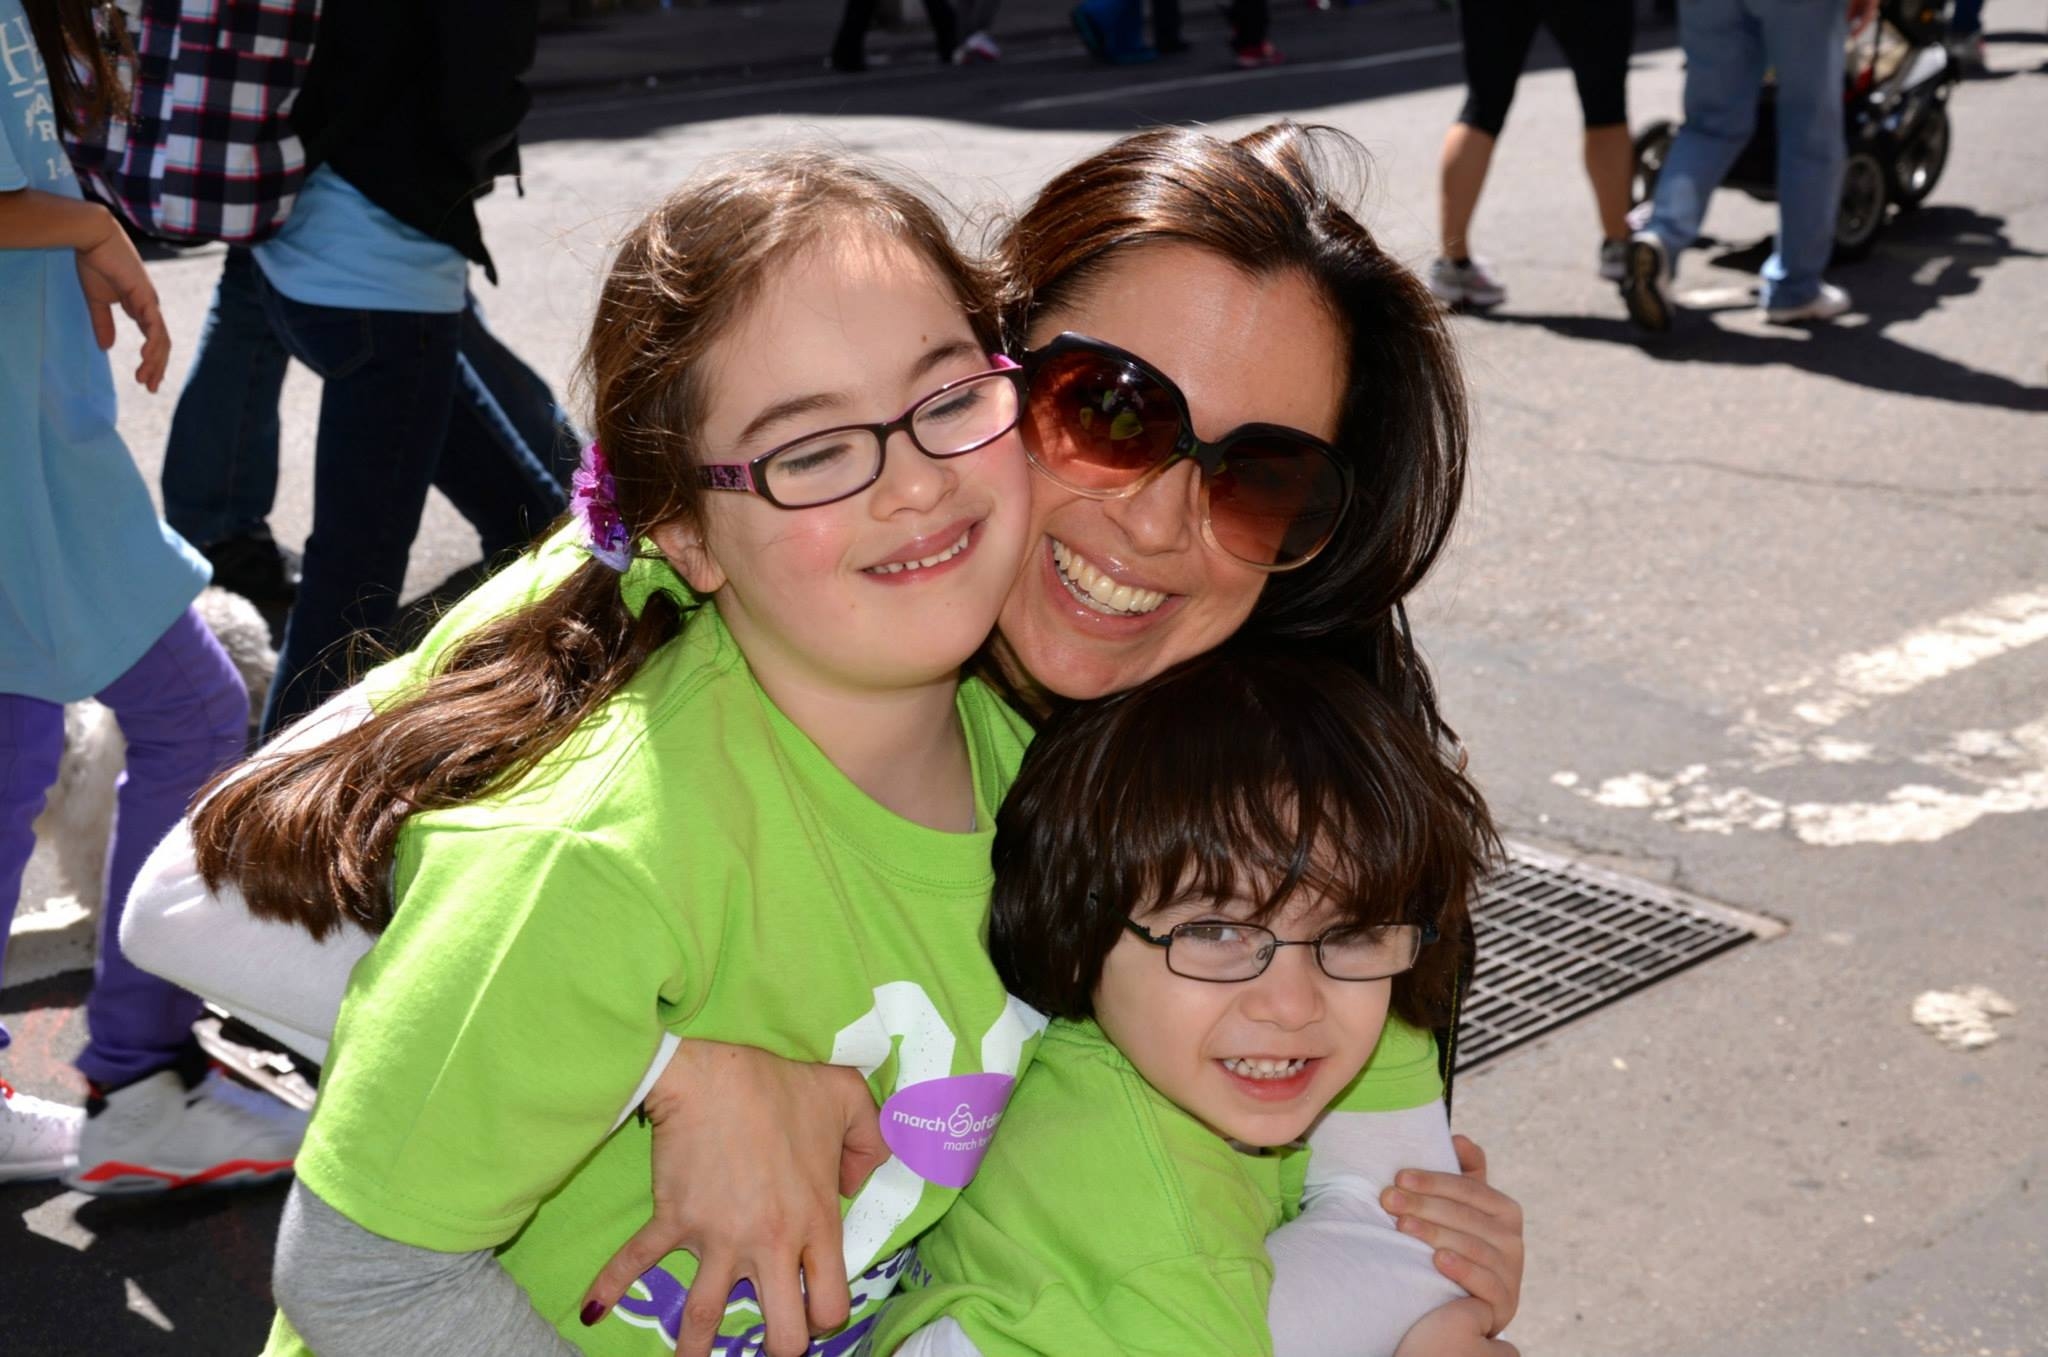 olivia-paulina-and-julian-levine-at-the-2015-march-for-babies-walk_16891568716_o.jpg